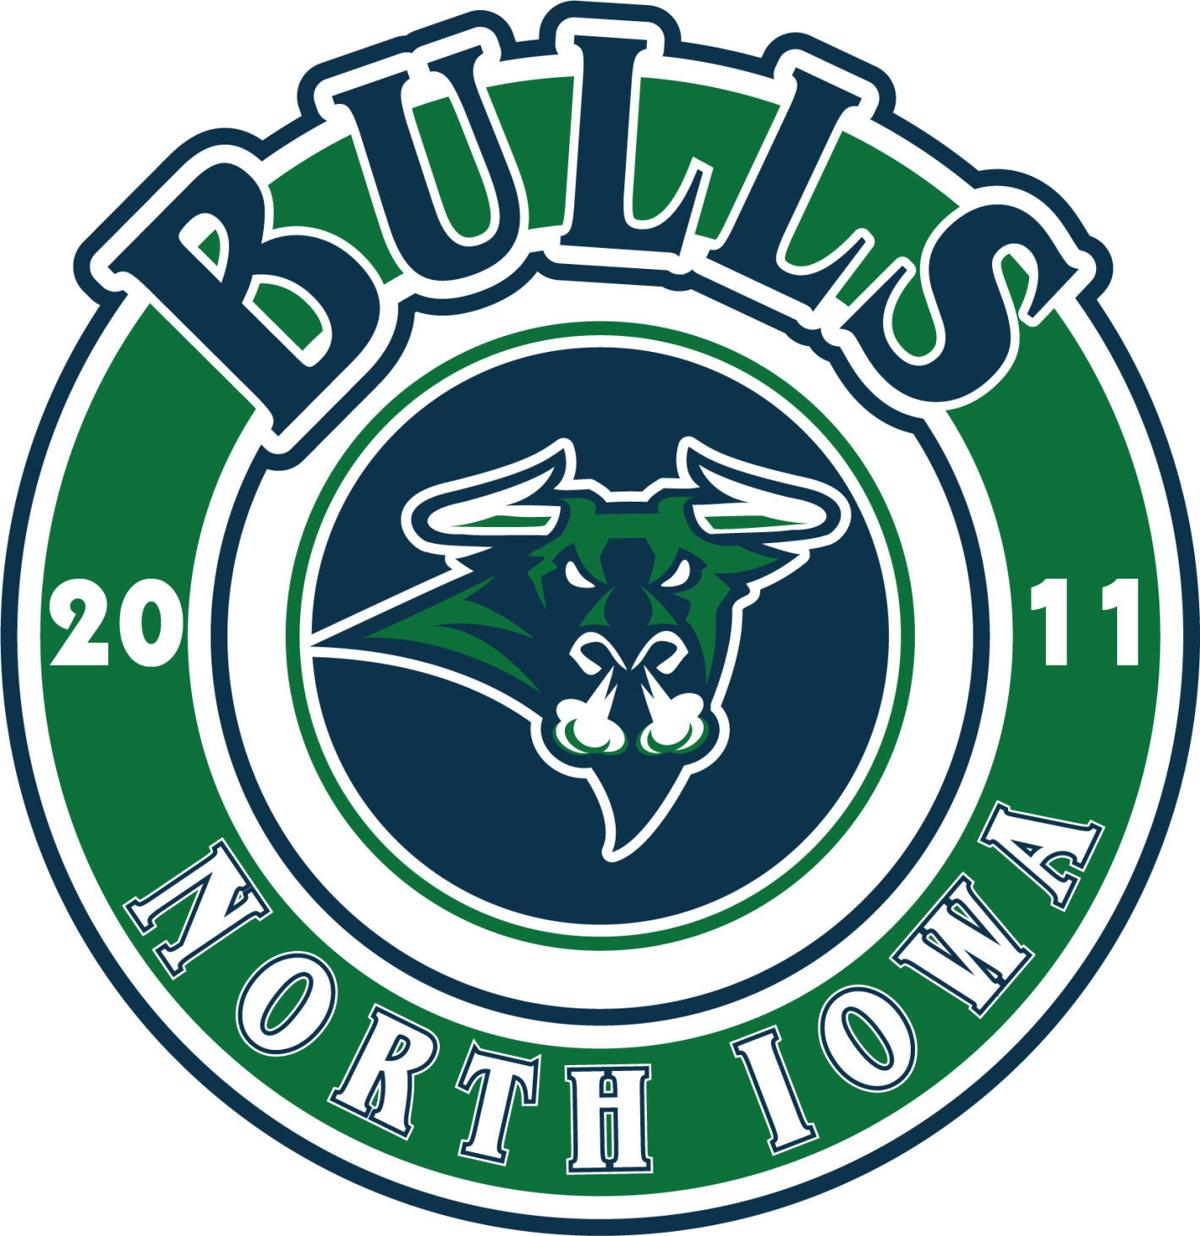 New North Iowa Bulls logo